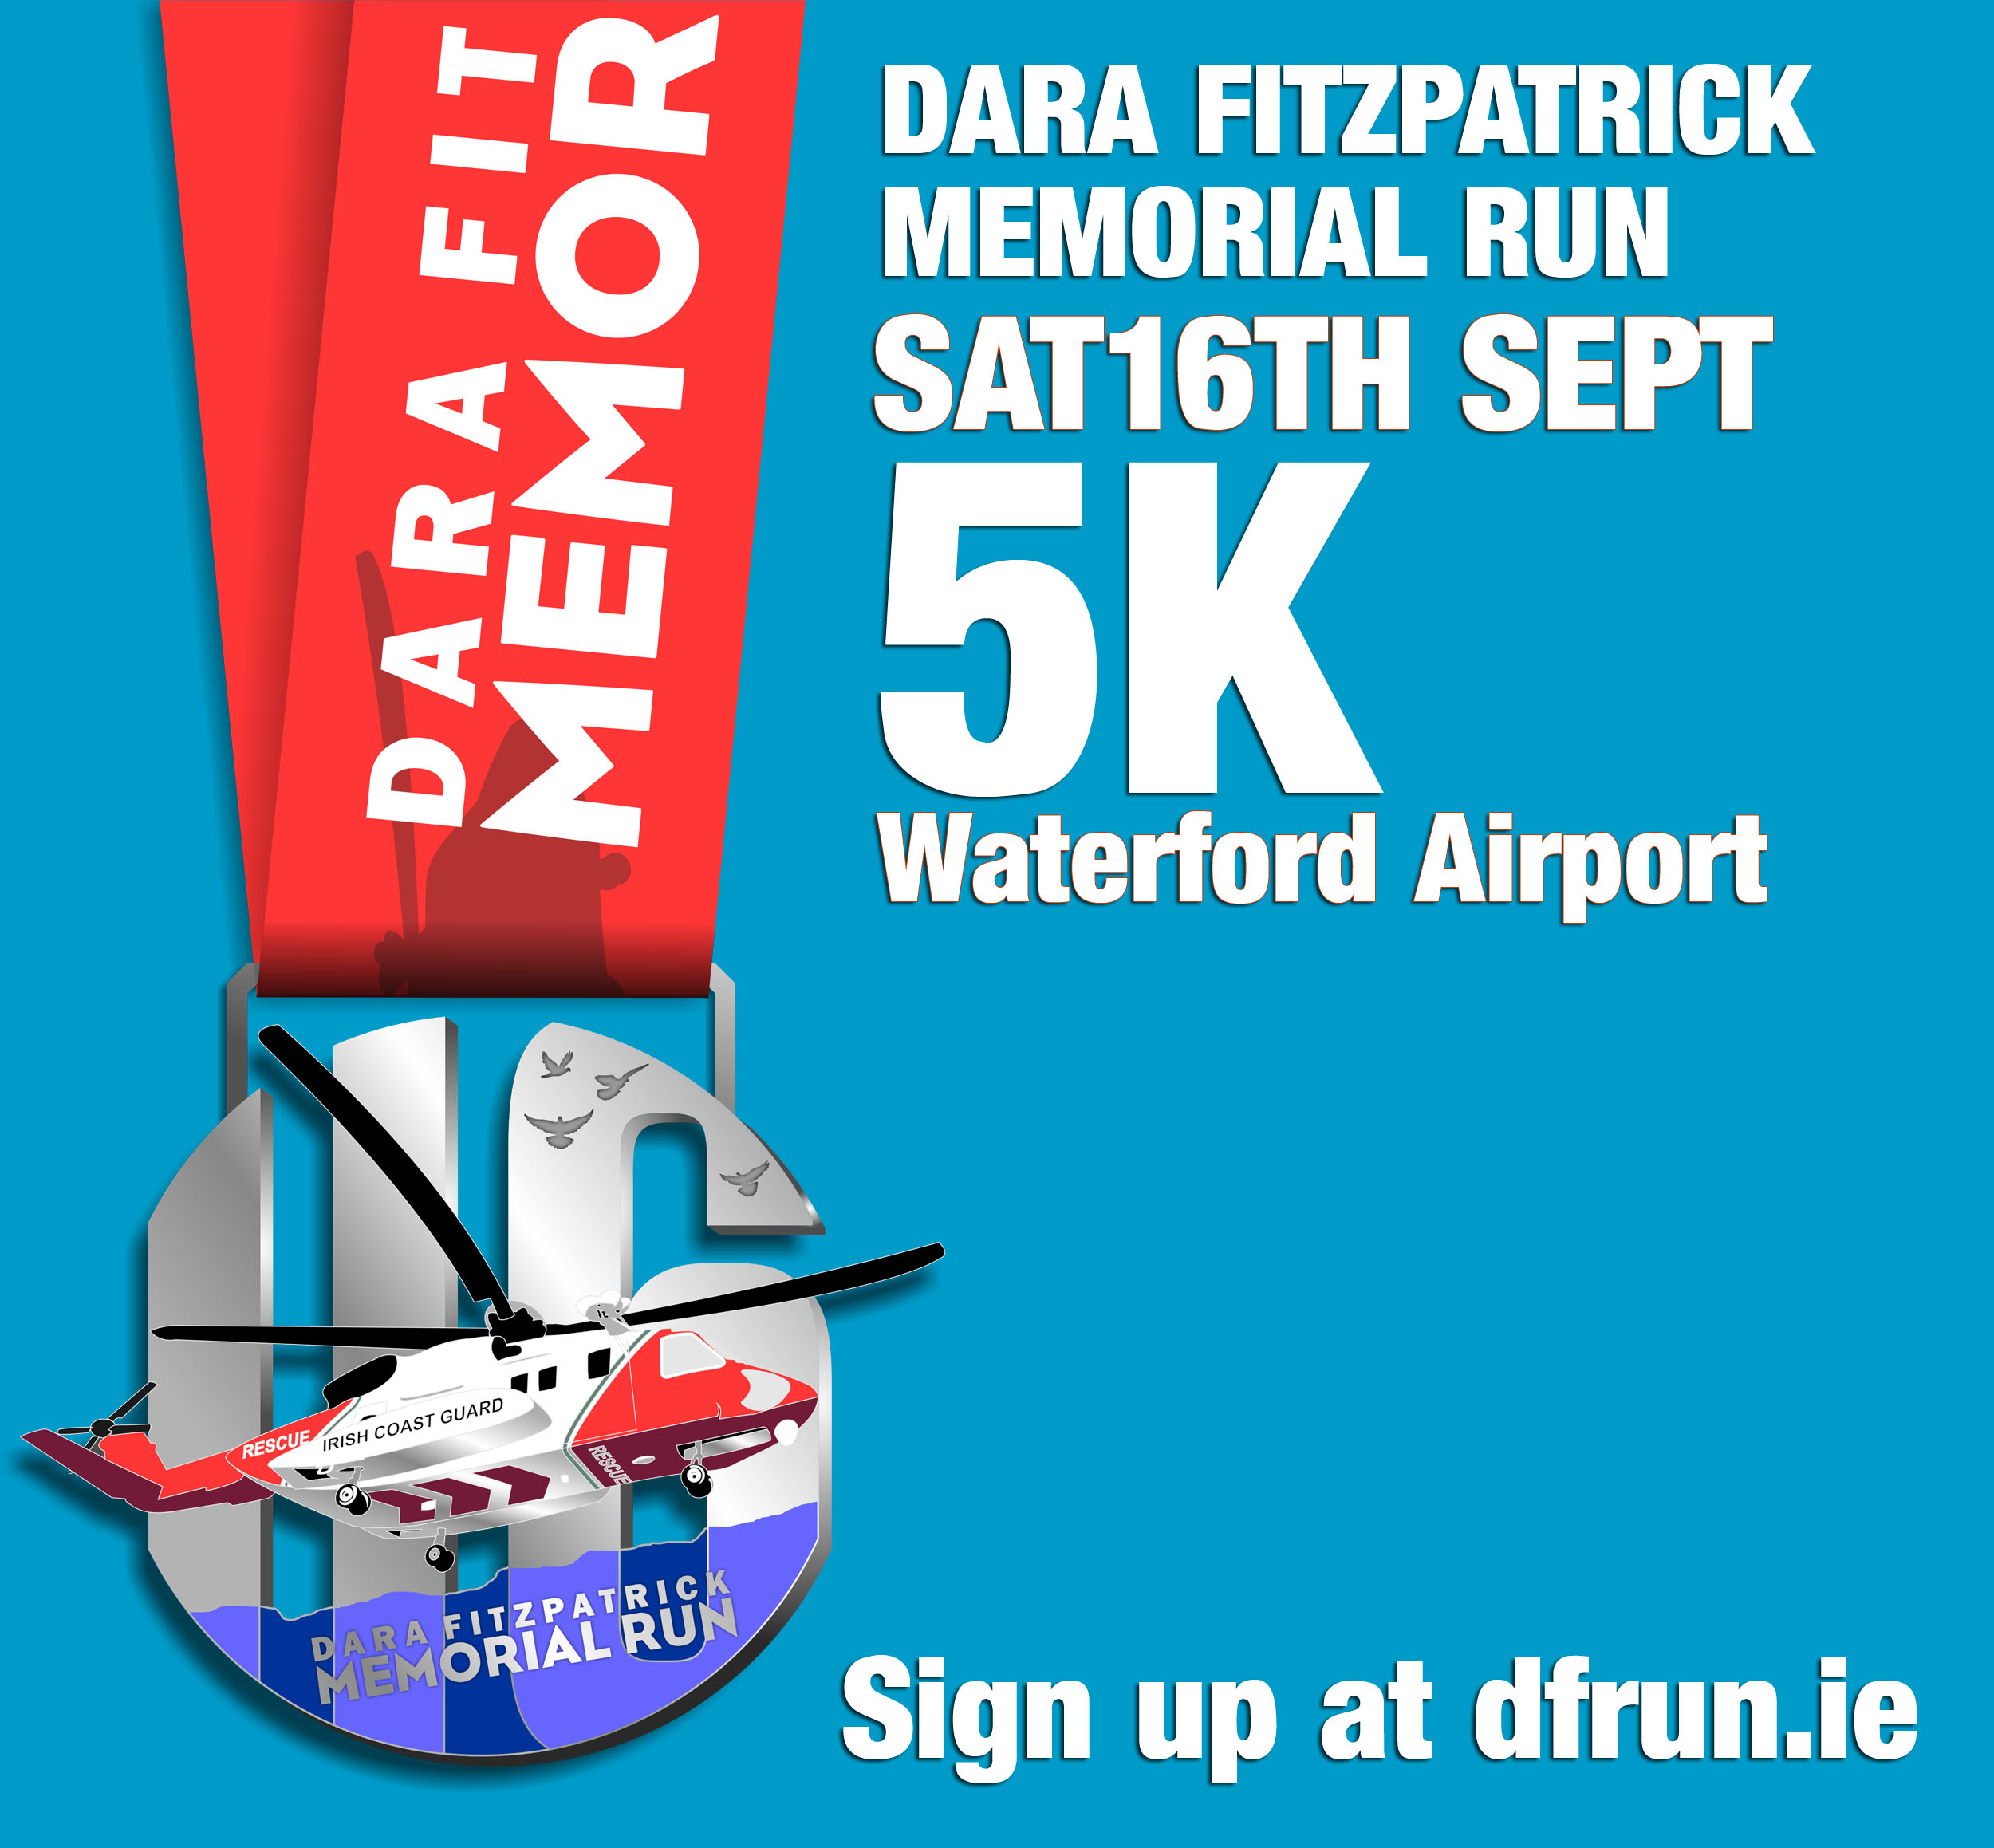 Finishers medal for The Dara Fitzpatrick Memorial Run